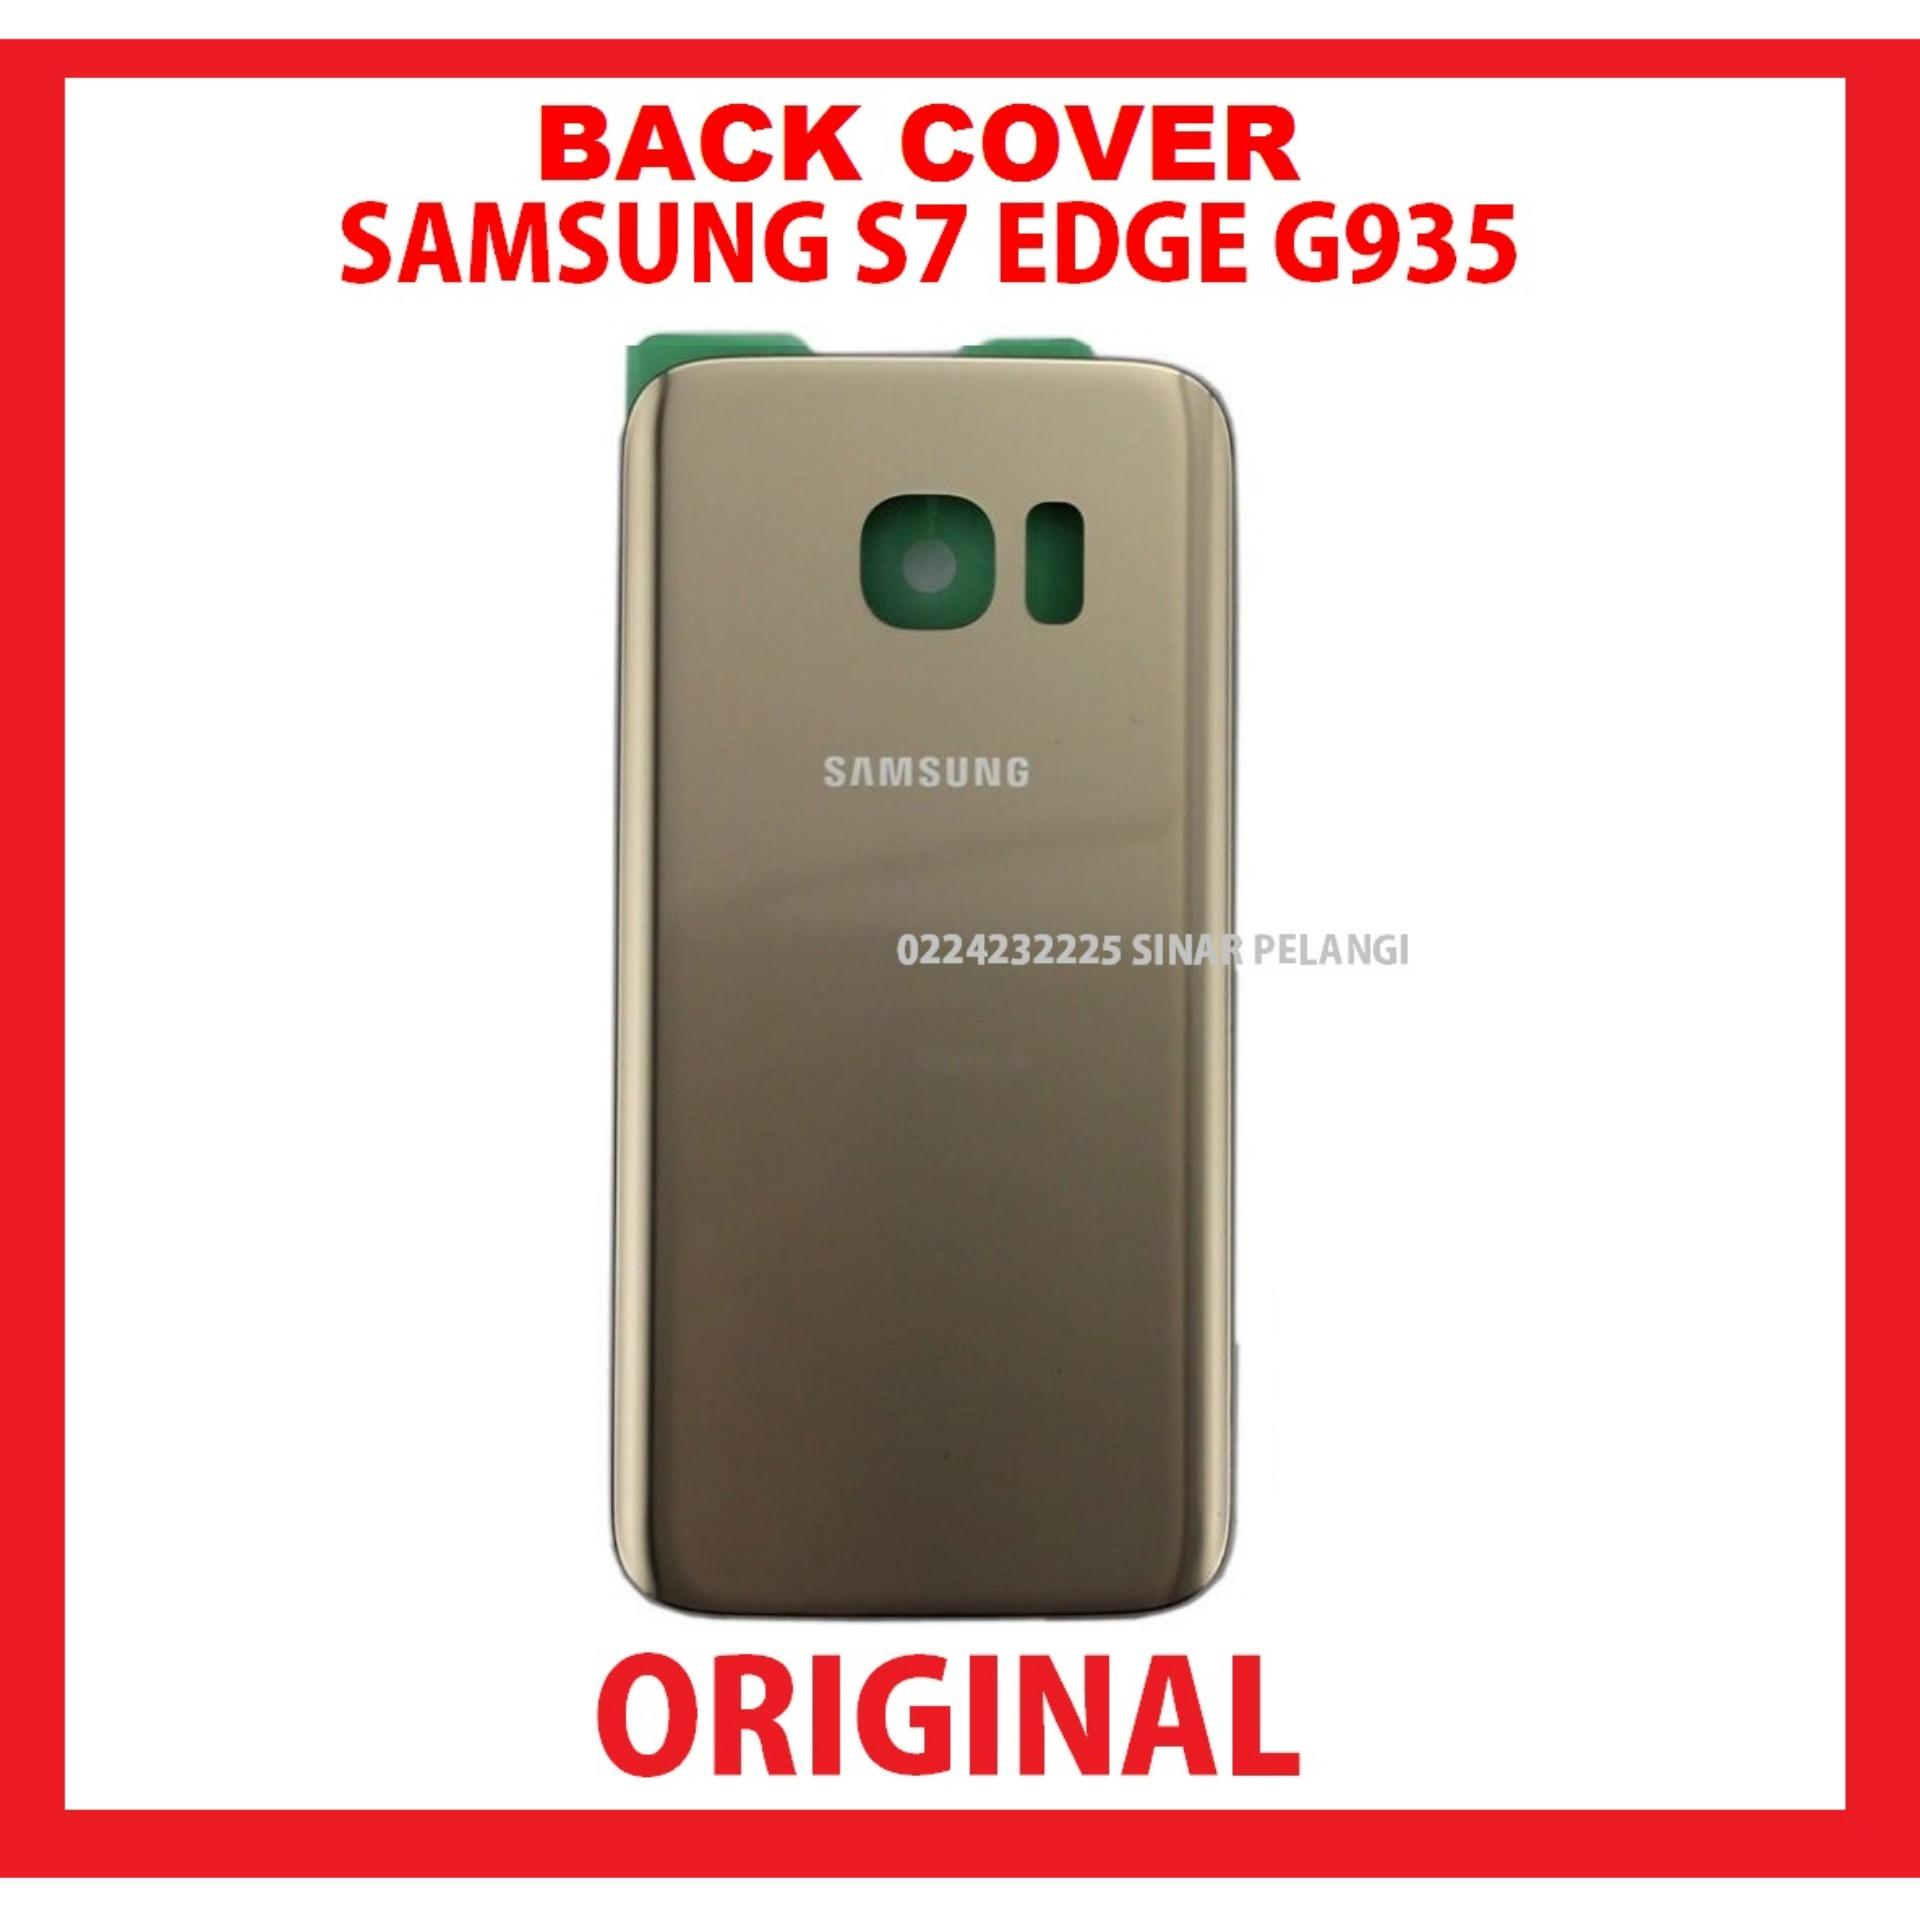 SAMSUNG GALAXY S7 EDGE G935 GOLD BATTERY BACK COVER BACK DOOR TUTUP BATERAI CASING BELAKANG ORIGINAL